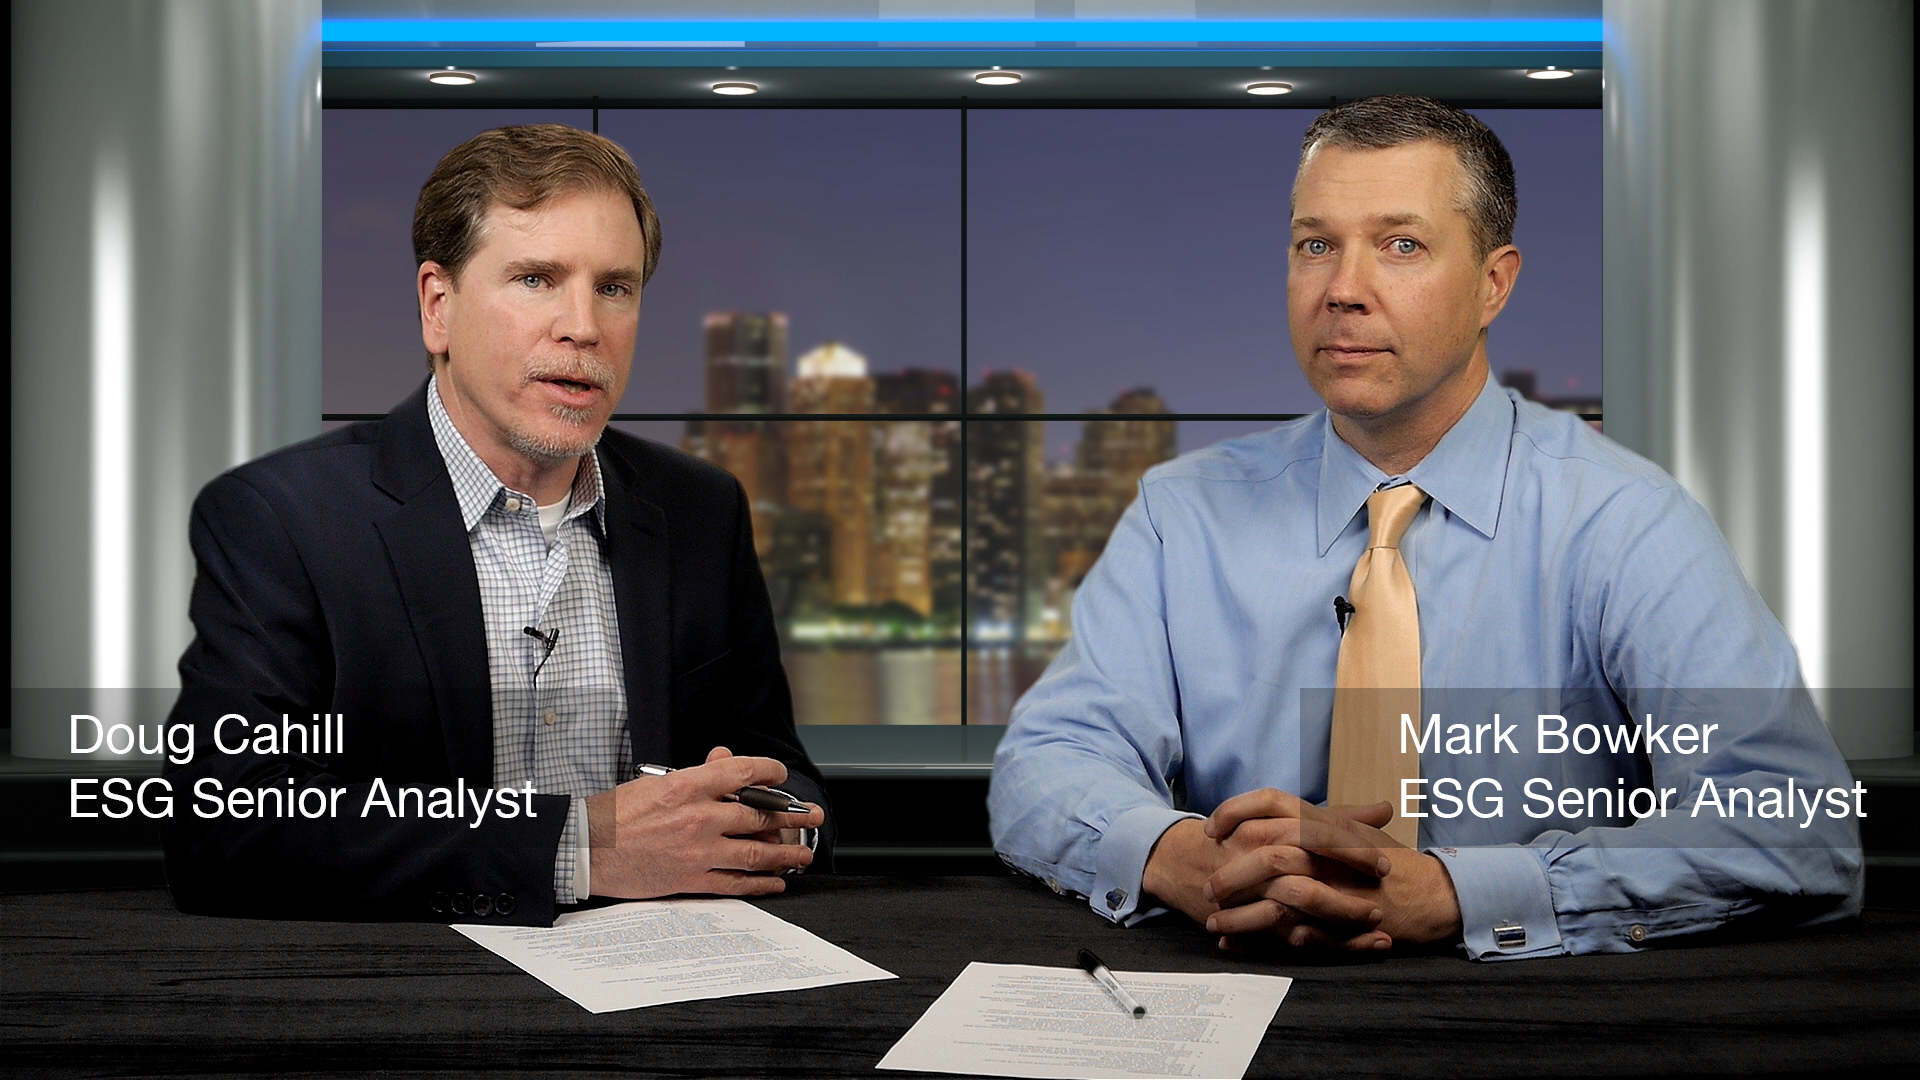 2019 Predictions for Enterprise Mobility (Video)